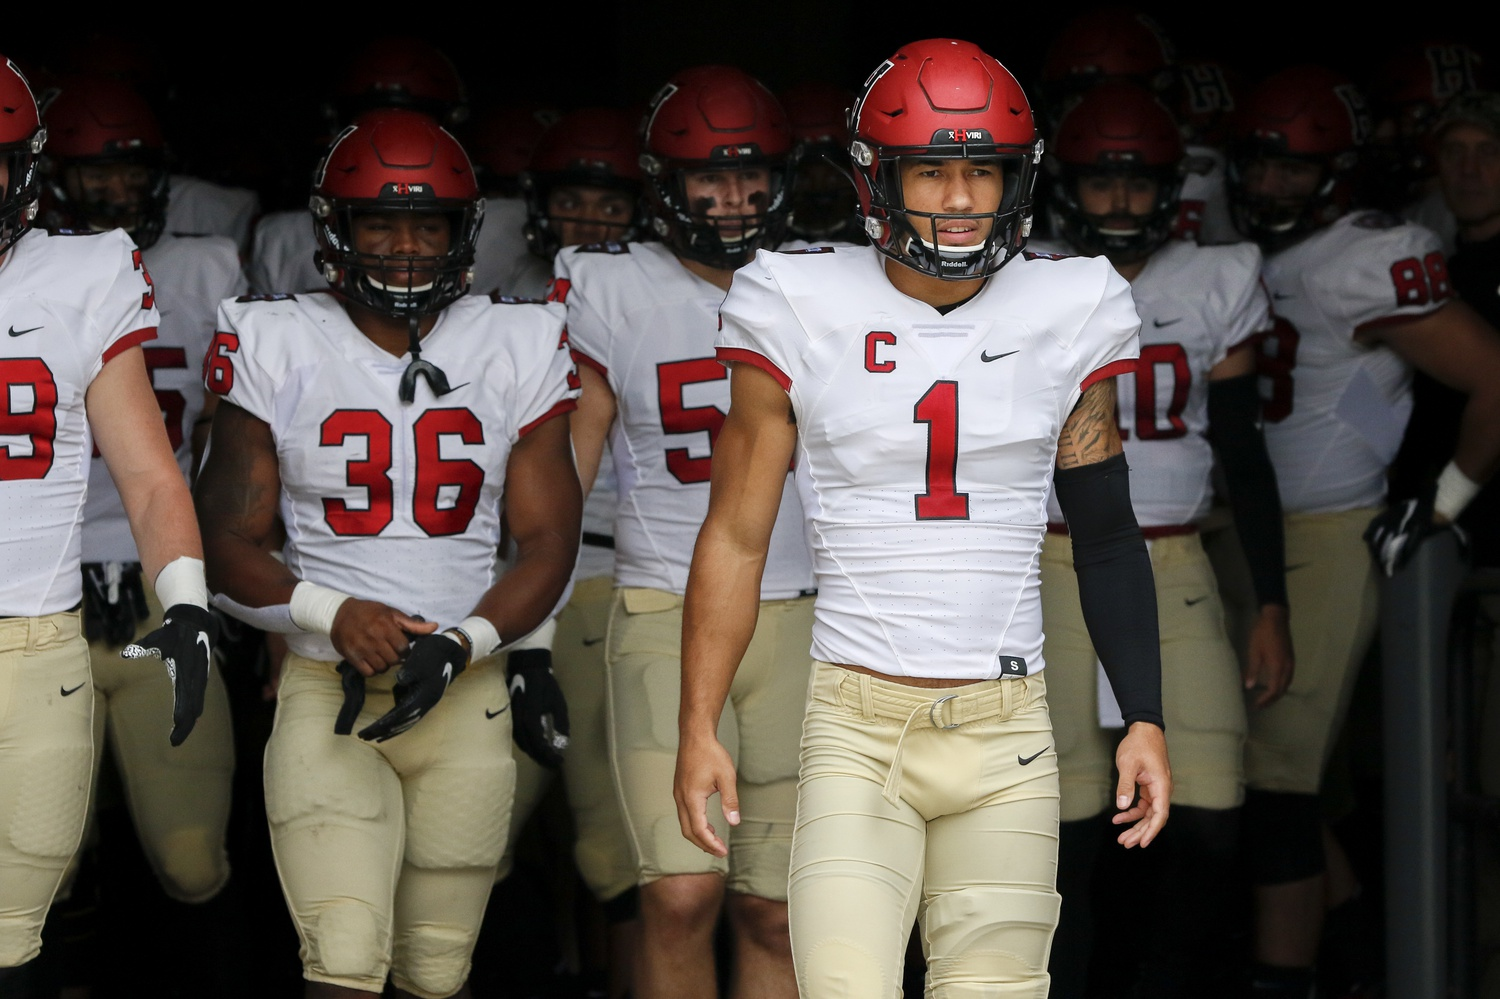 The Crimson, led by senior captain Wesley Ogsbury, takes to Harvard Stadium this Saturday in a battle against the Big Green.